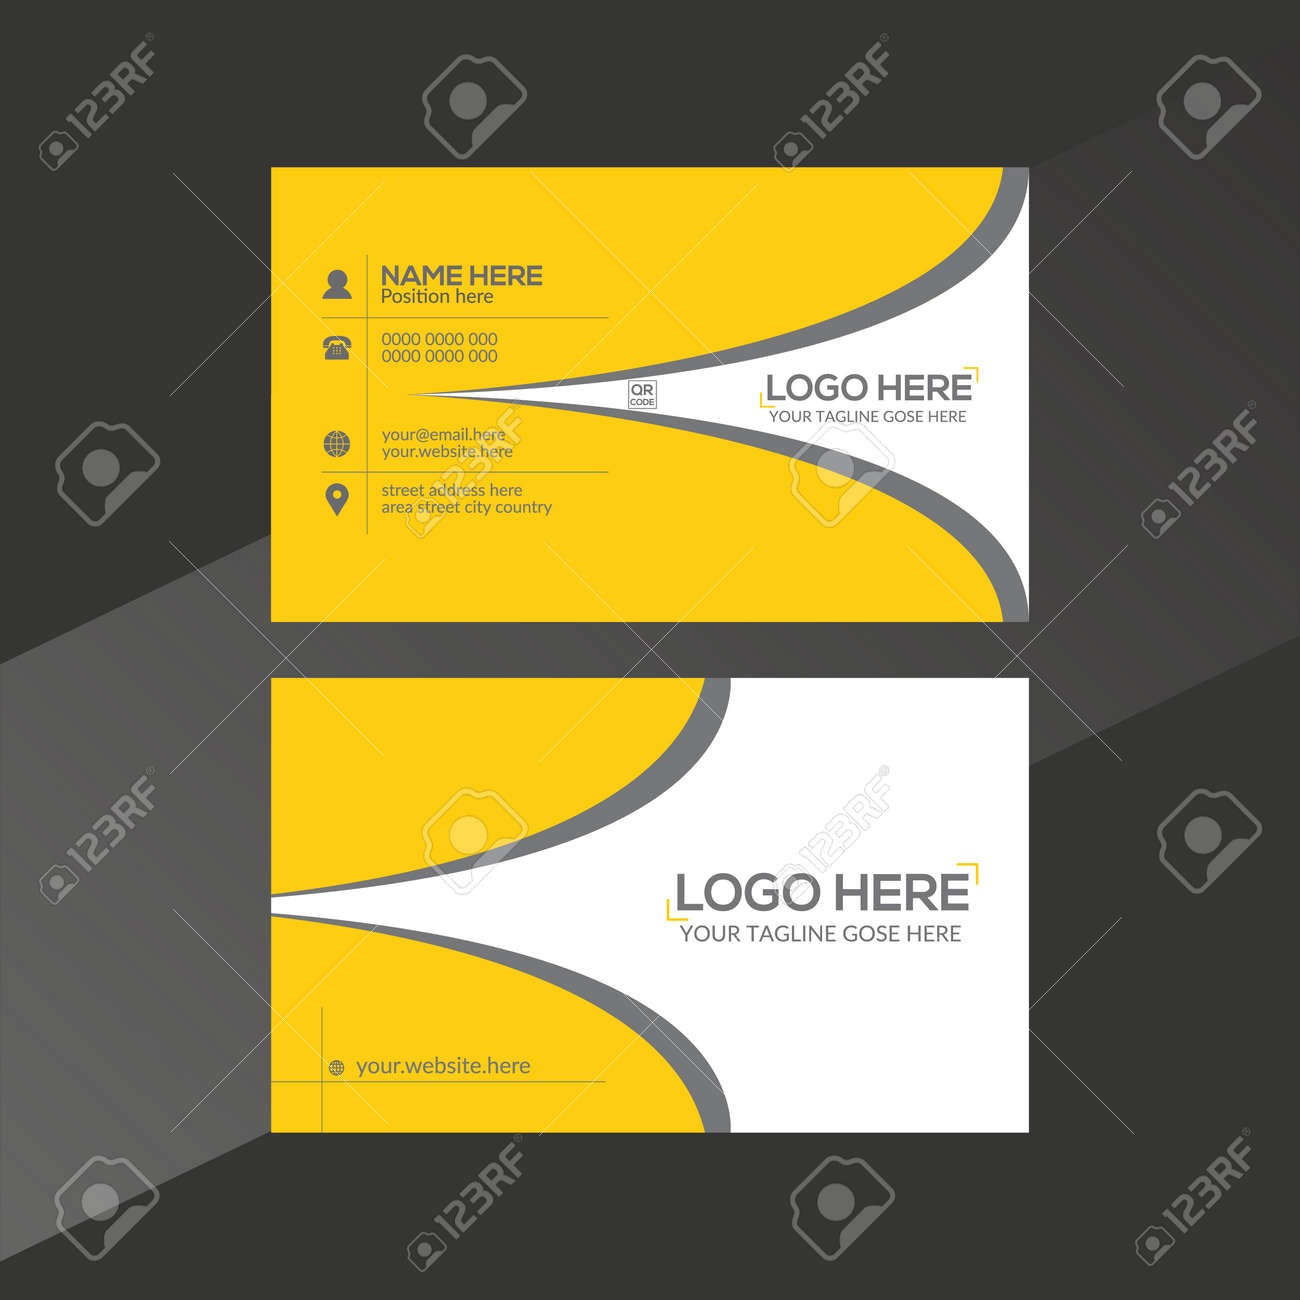 orange and gray colored vector business card design for any company use - 171793815